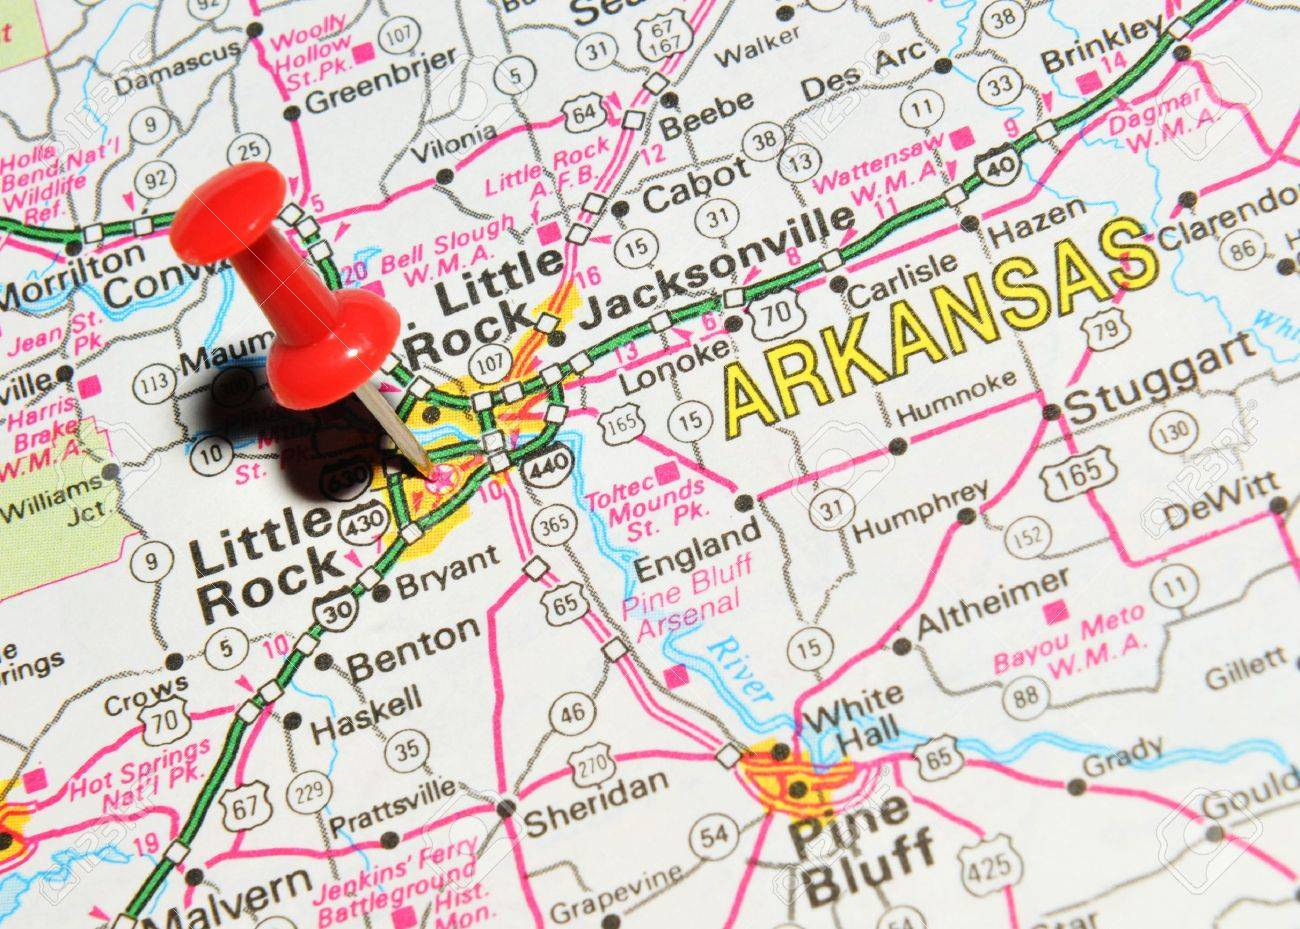 Arkansas State Map Stock Photos Images Royalty Free Arkansas - United states map arkansas